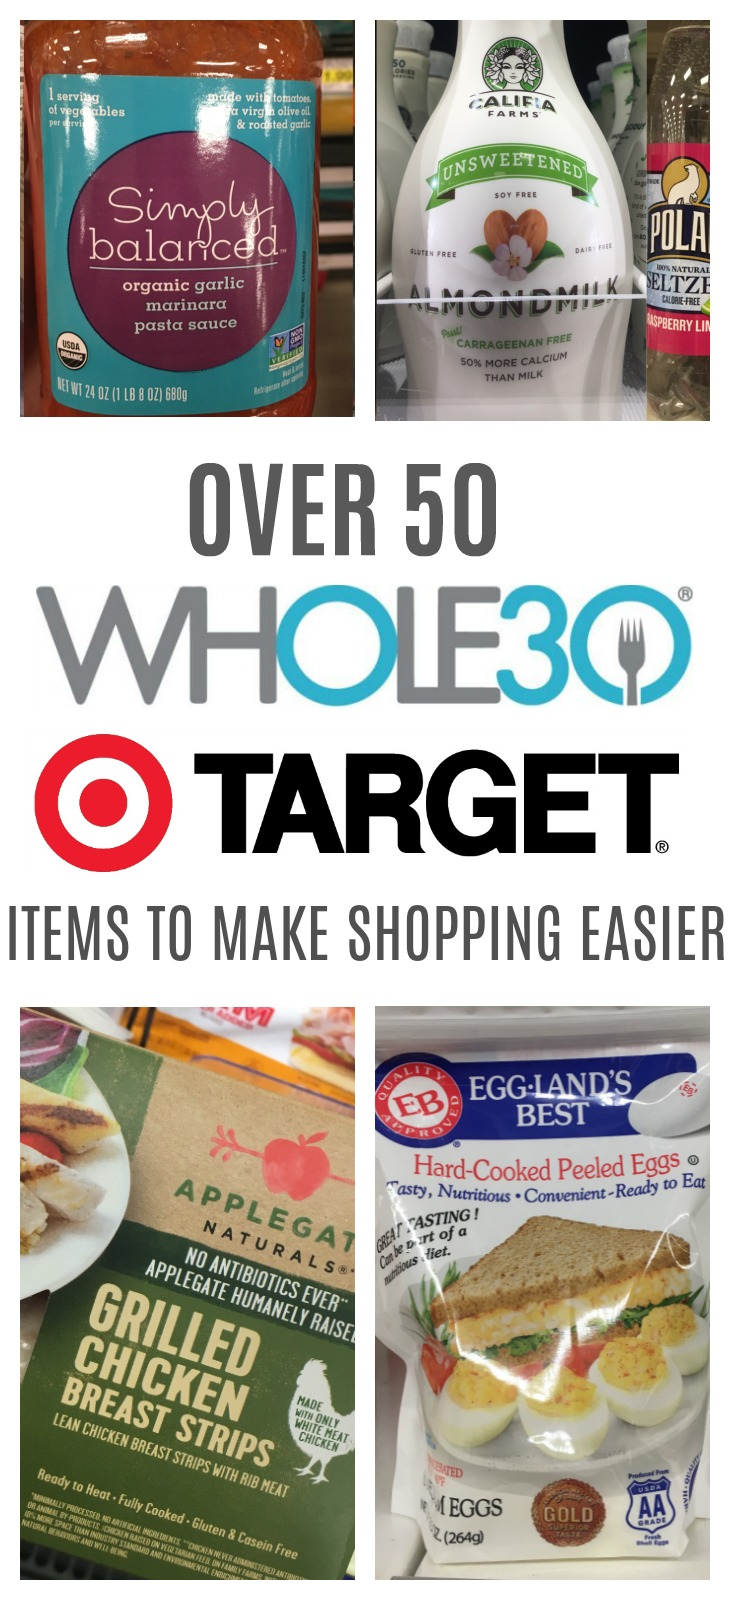 Whole30 just got easier with these Whole30 Target options! From Whole30 meat, healthy fats, compliant milk and emergency foods, grocery shopping for Whole30 will be quick and easy in one store. #whole30target #whole30grocery #whole30tips #targetwhole30